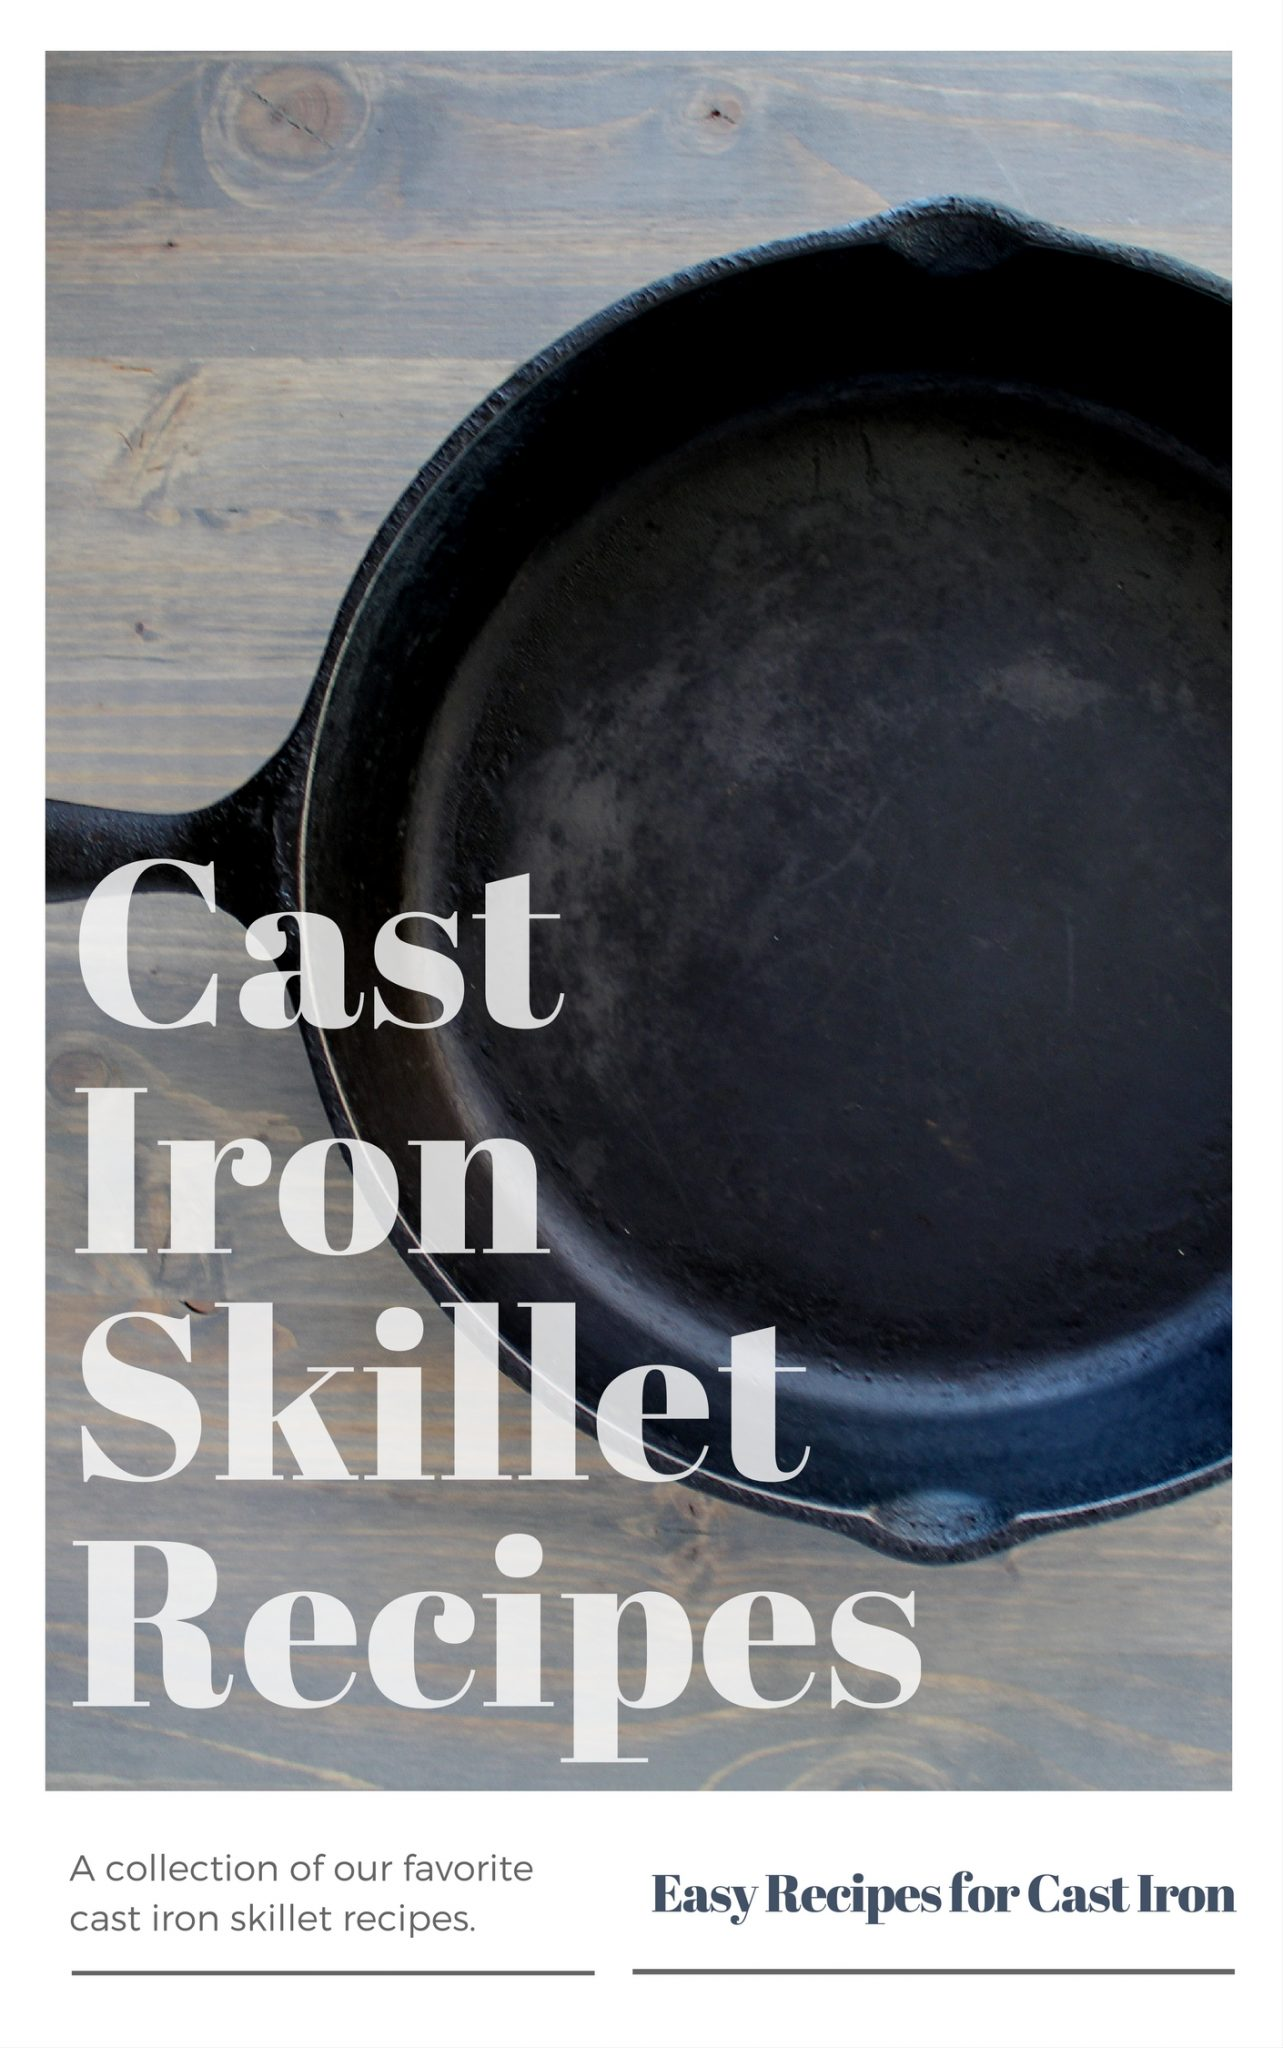 From hand me down recipes to our own creations, here are some of our favorite cast iron recipes.